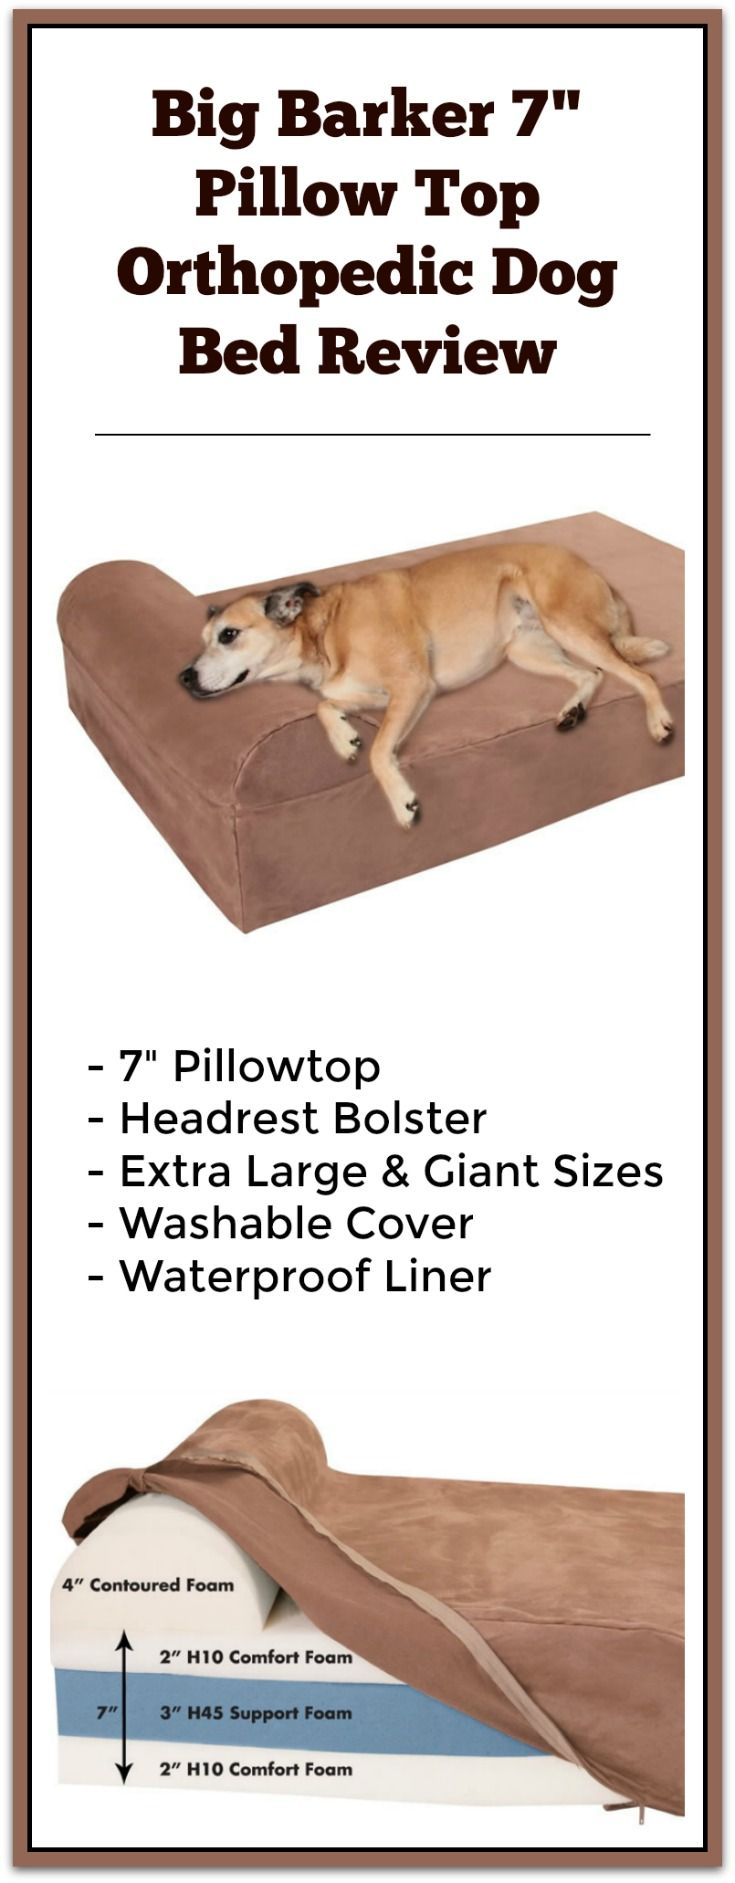 "The Big Barker 7"" Pillowtop Orthopedic Dog Bed review"